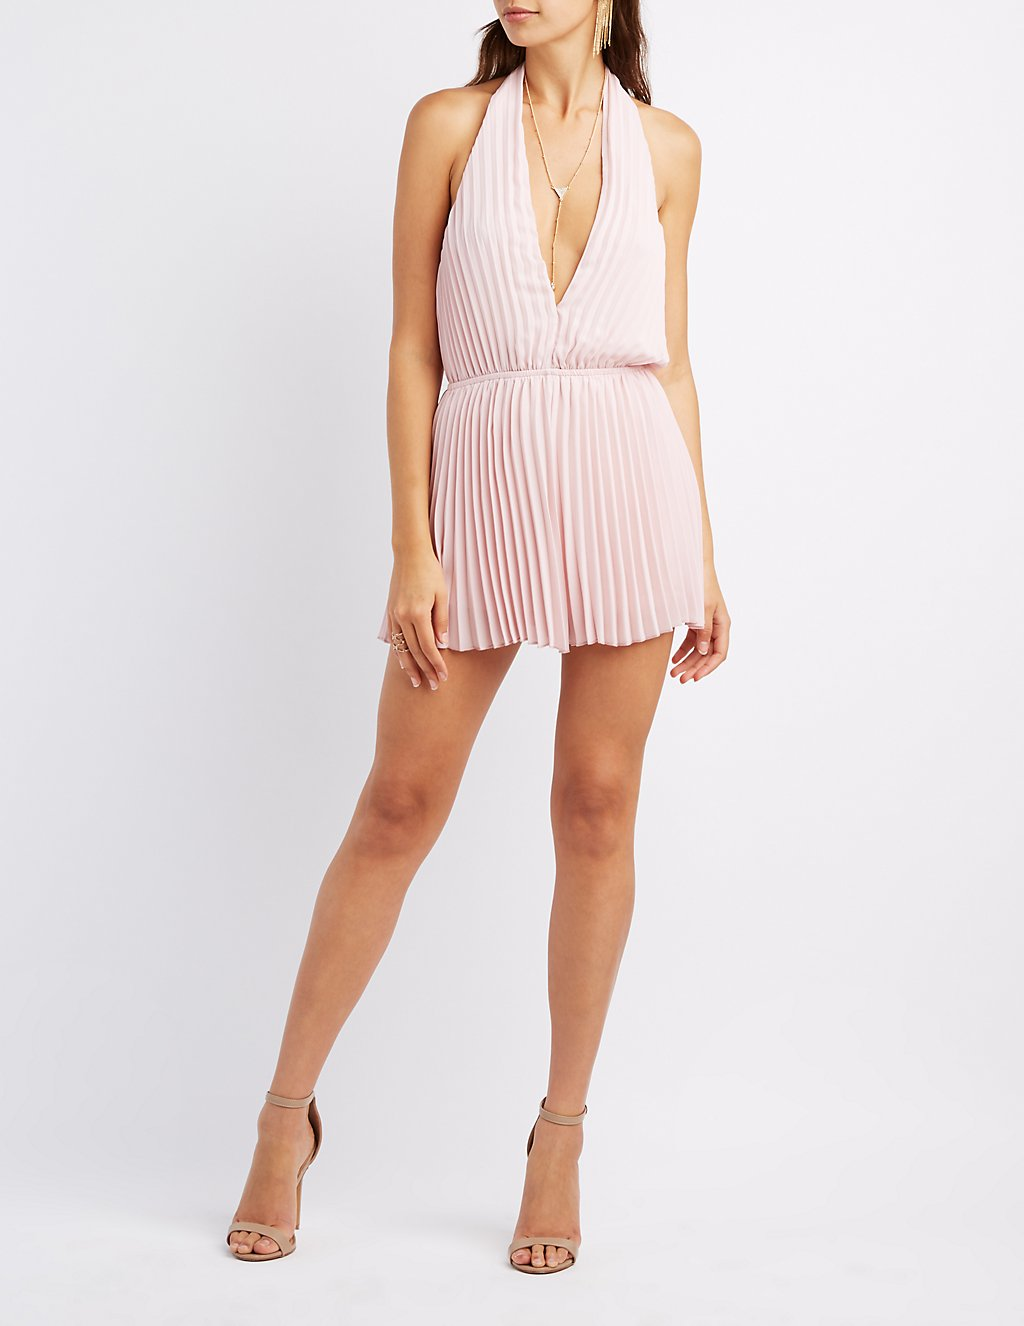 Christie brinkley says shes too busy to date daily mail online charlotte russe pleated plunging halter romper geenschuldenfo Images